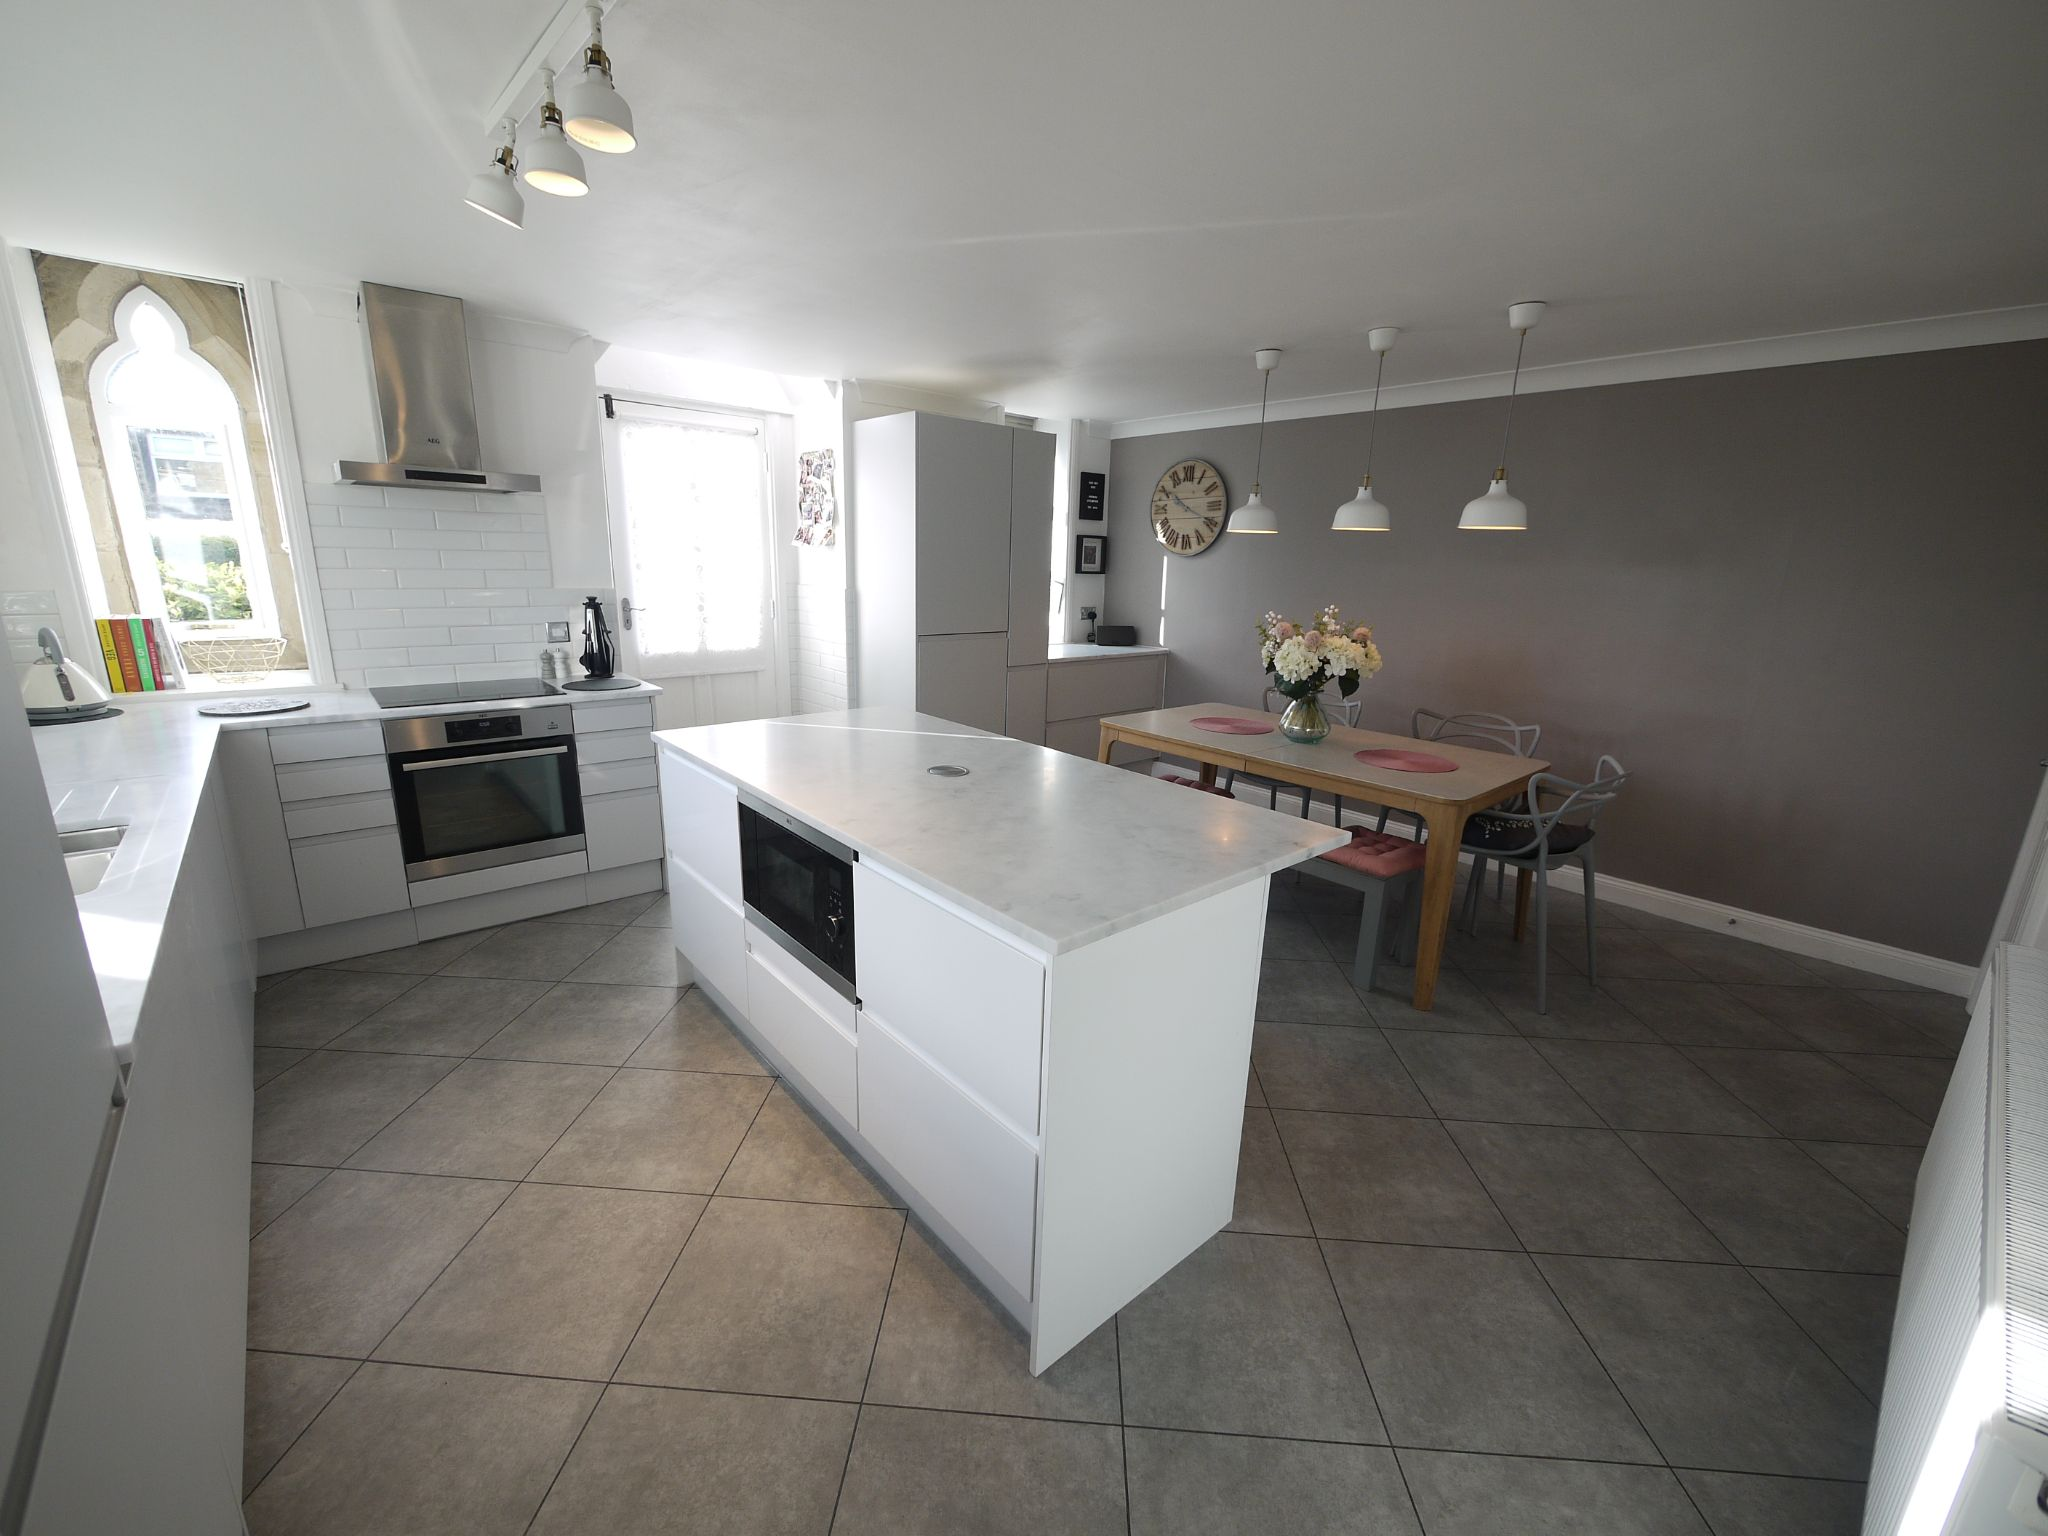 2 bedroom end terraced house SSTC in Cleckheaton - Kitchen 1.